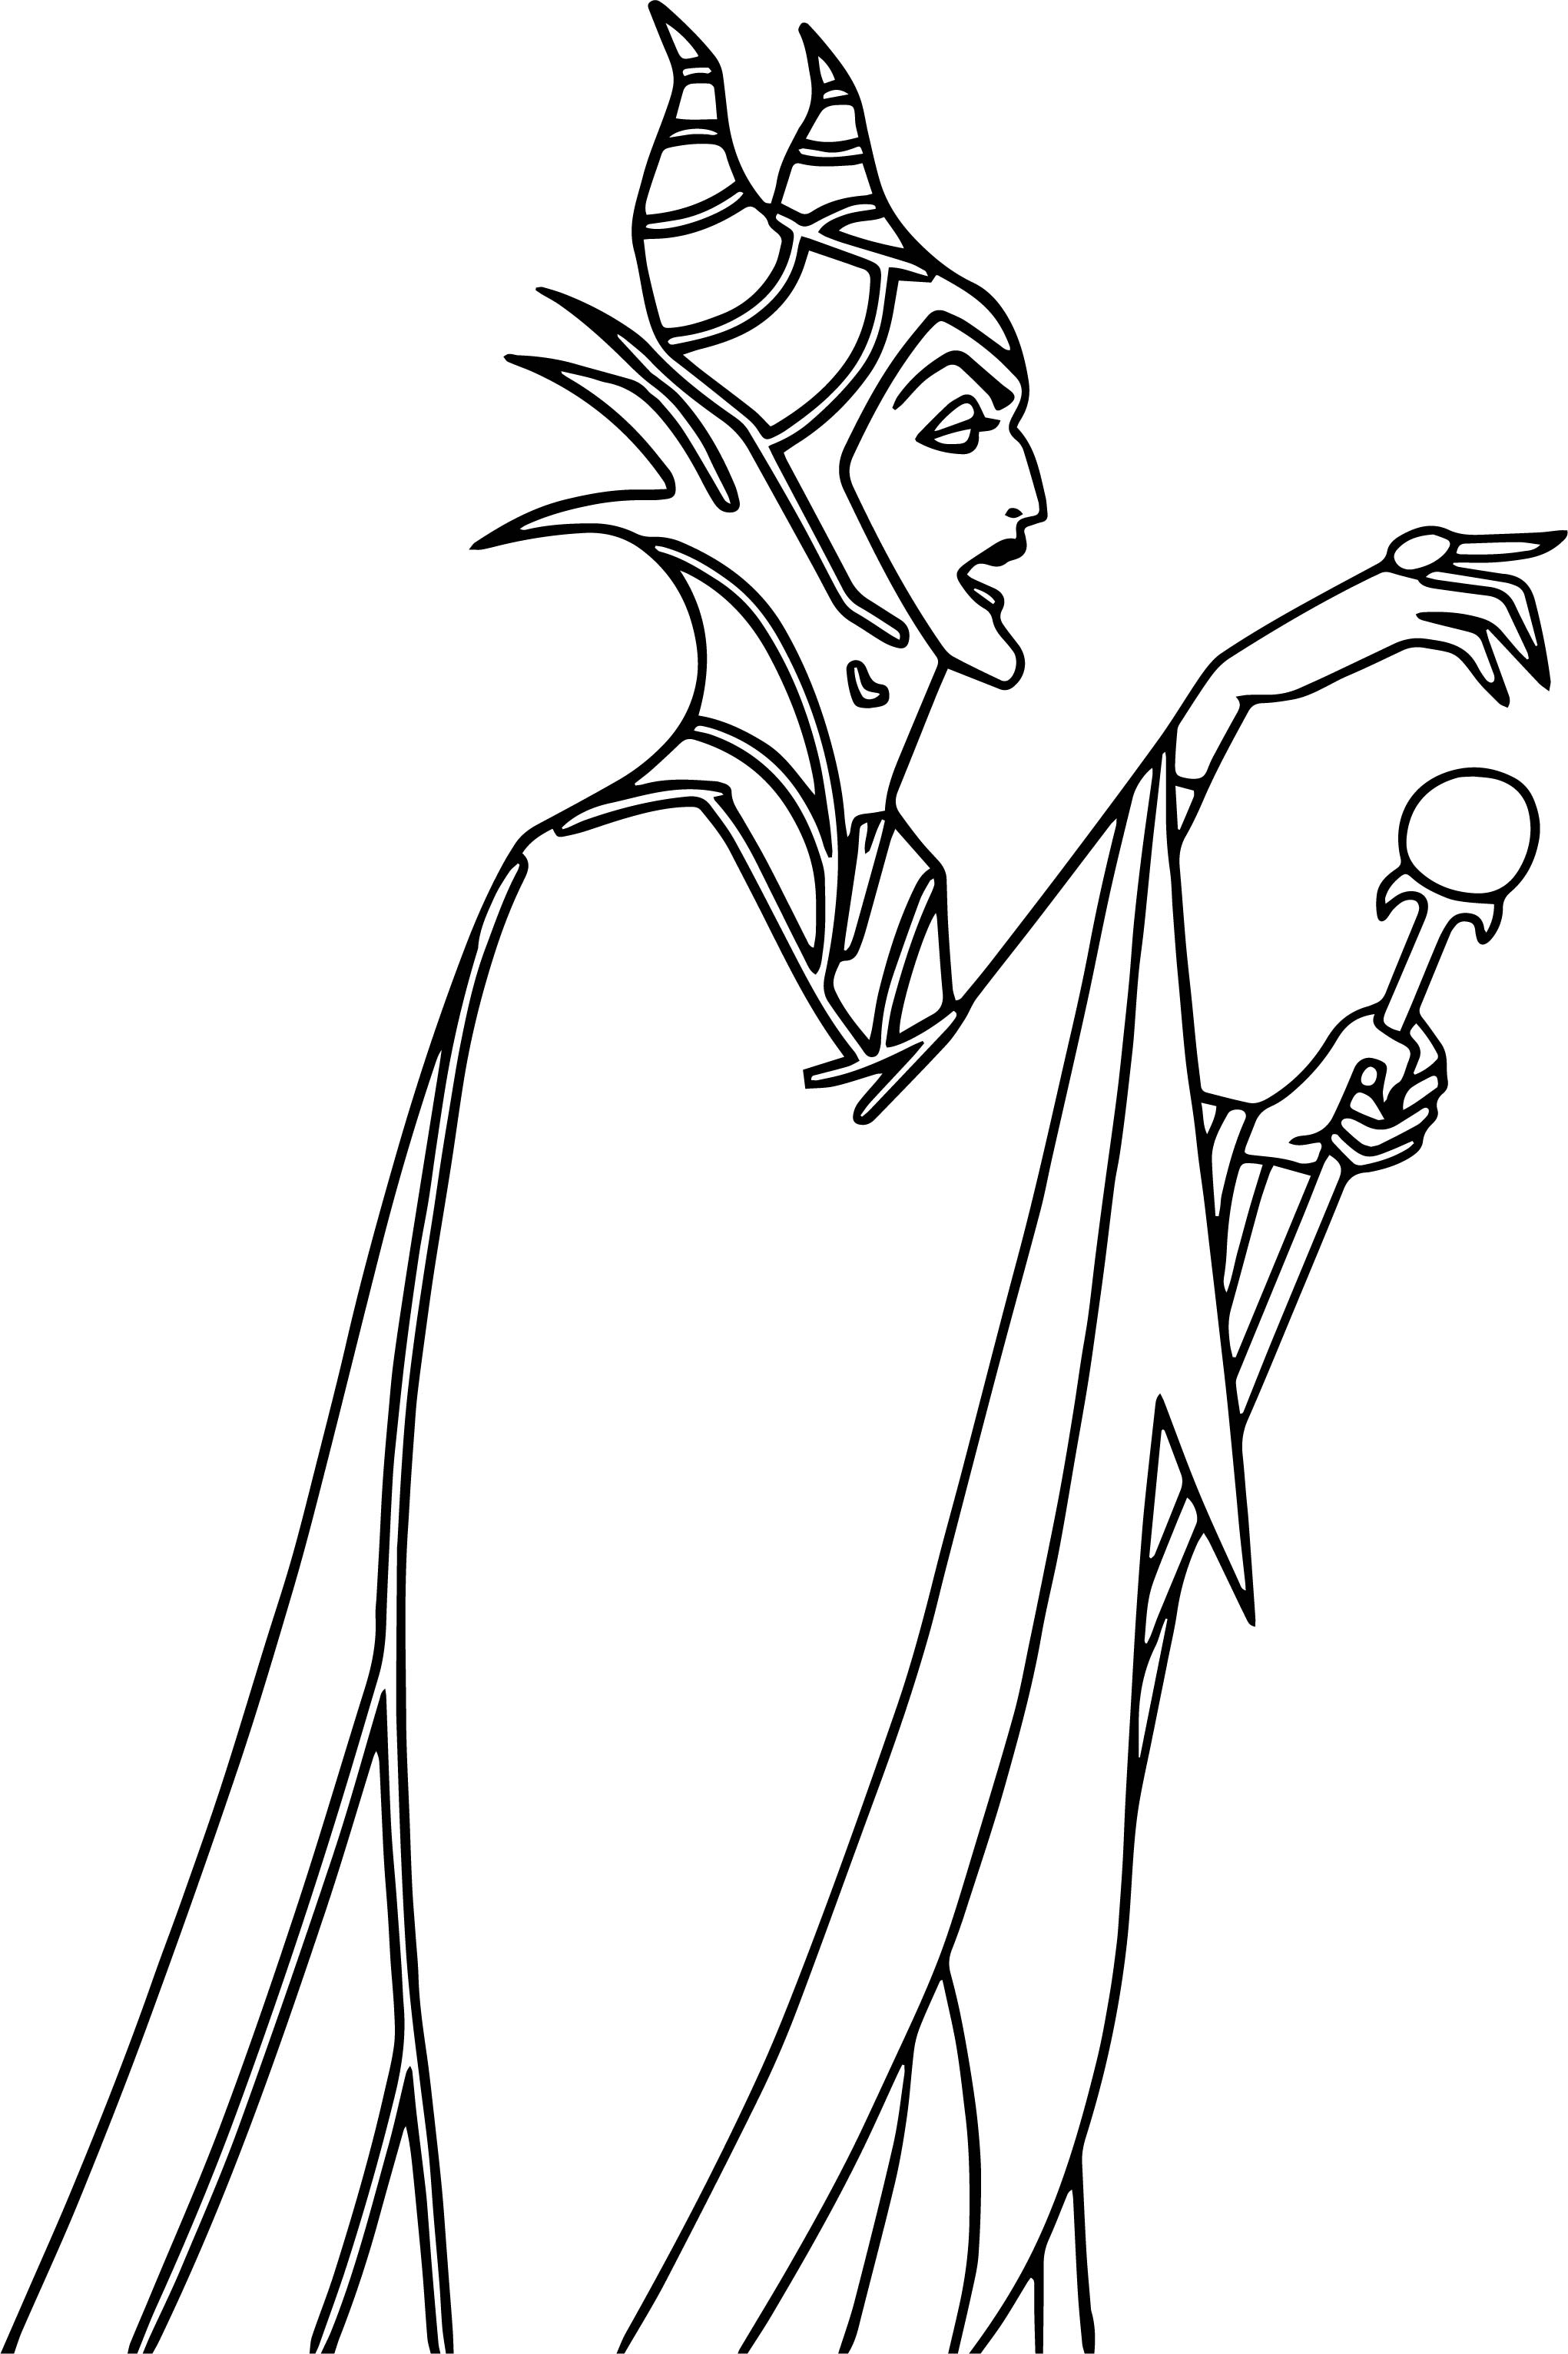 Aurora maleficent side coloring page for Maleficent coloring pages